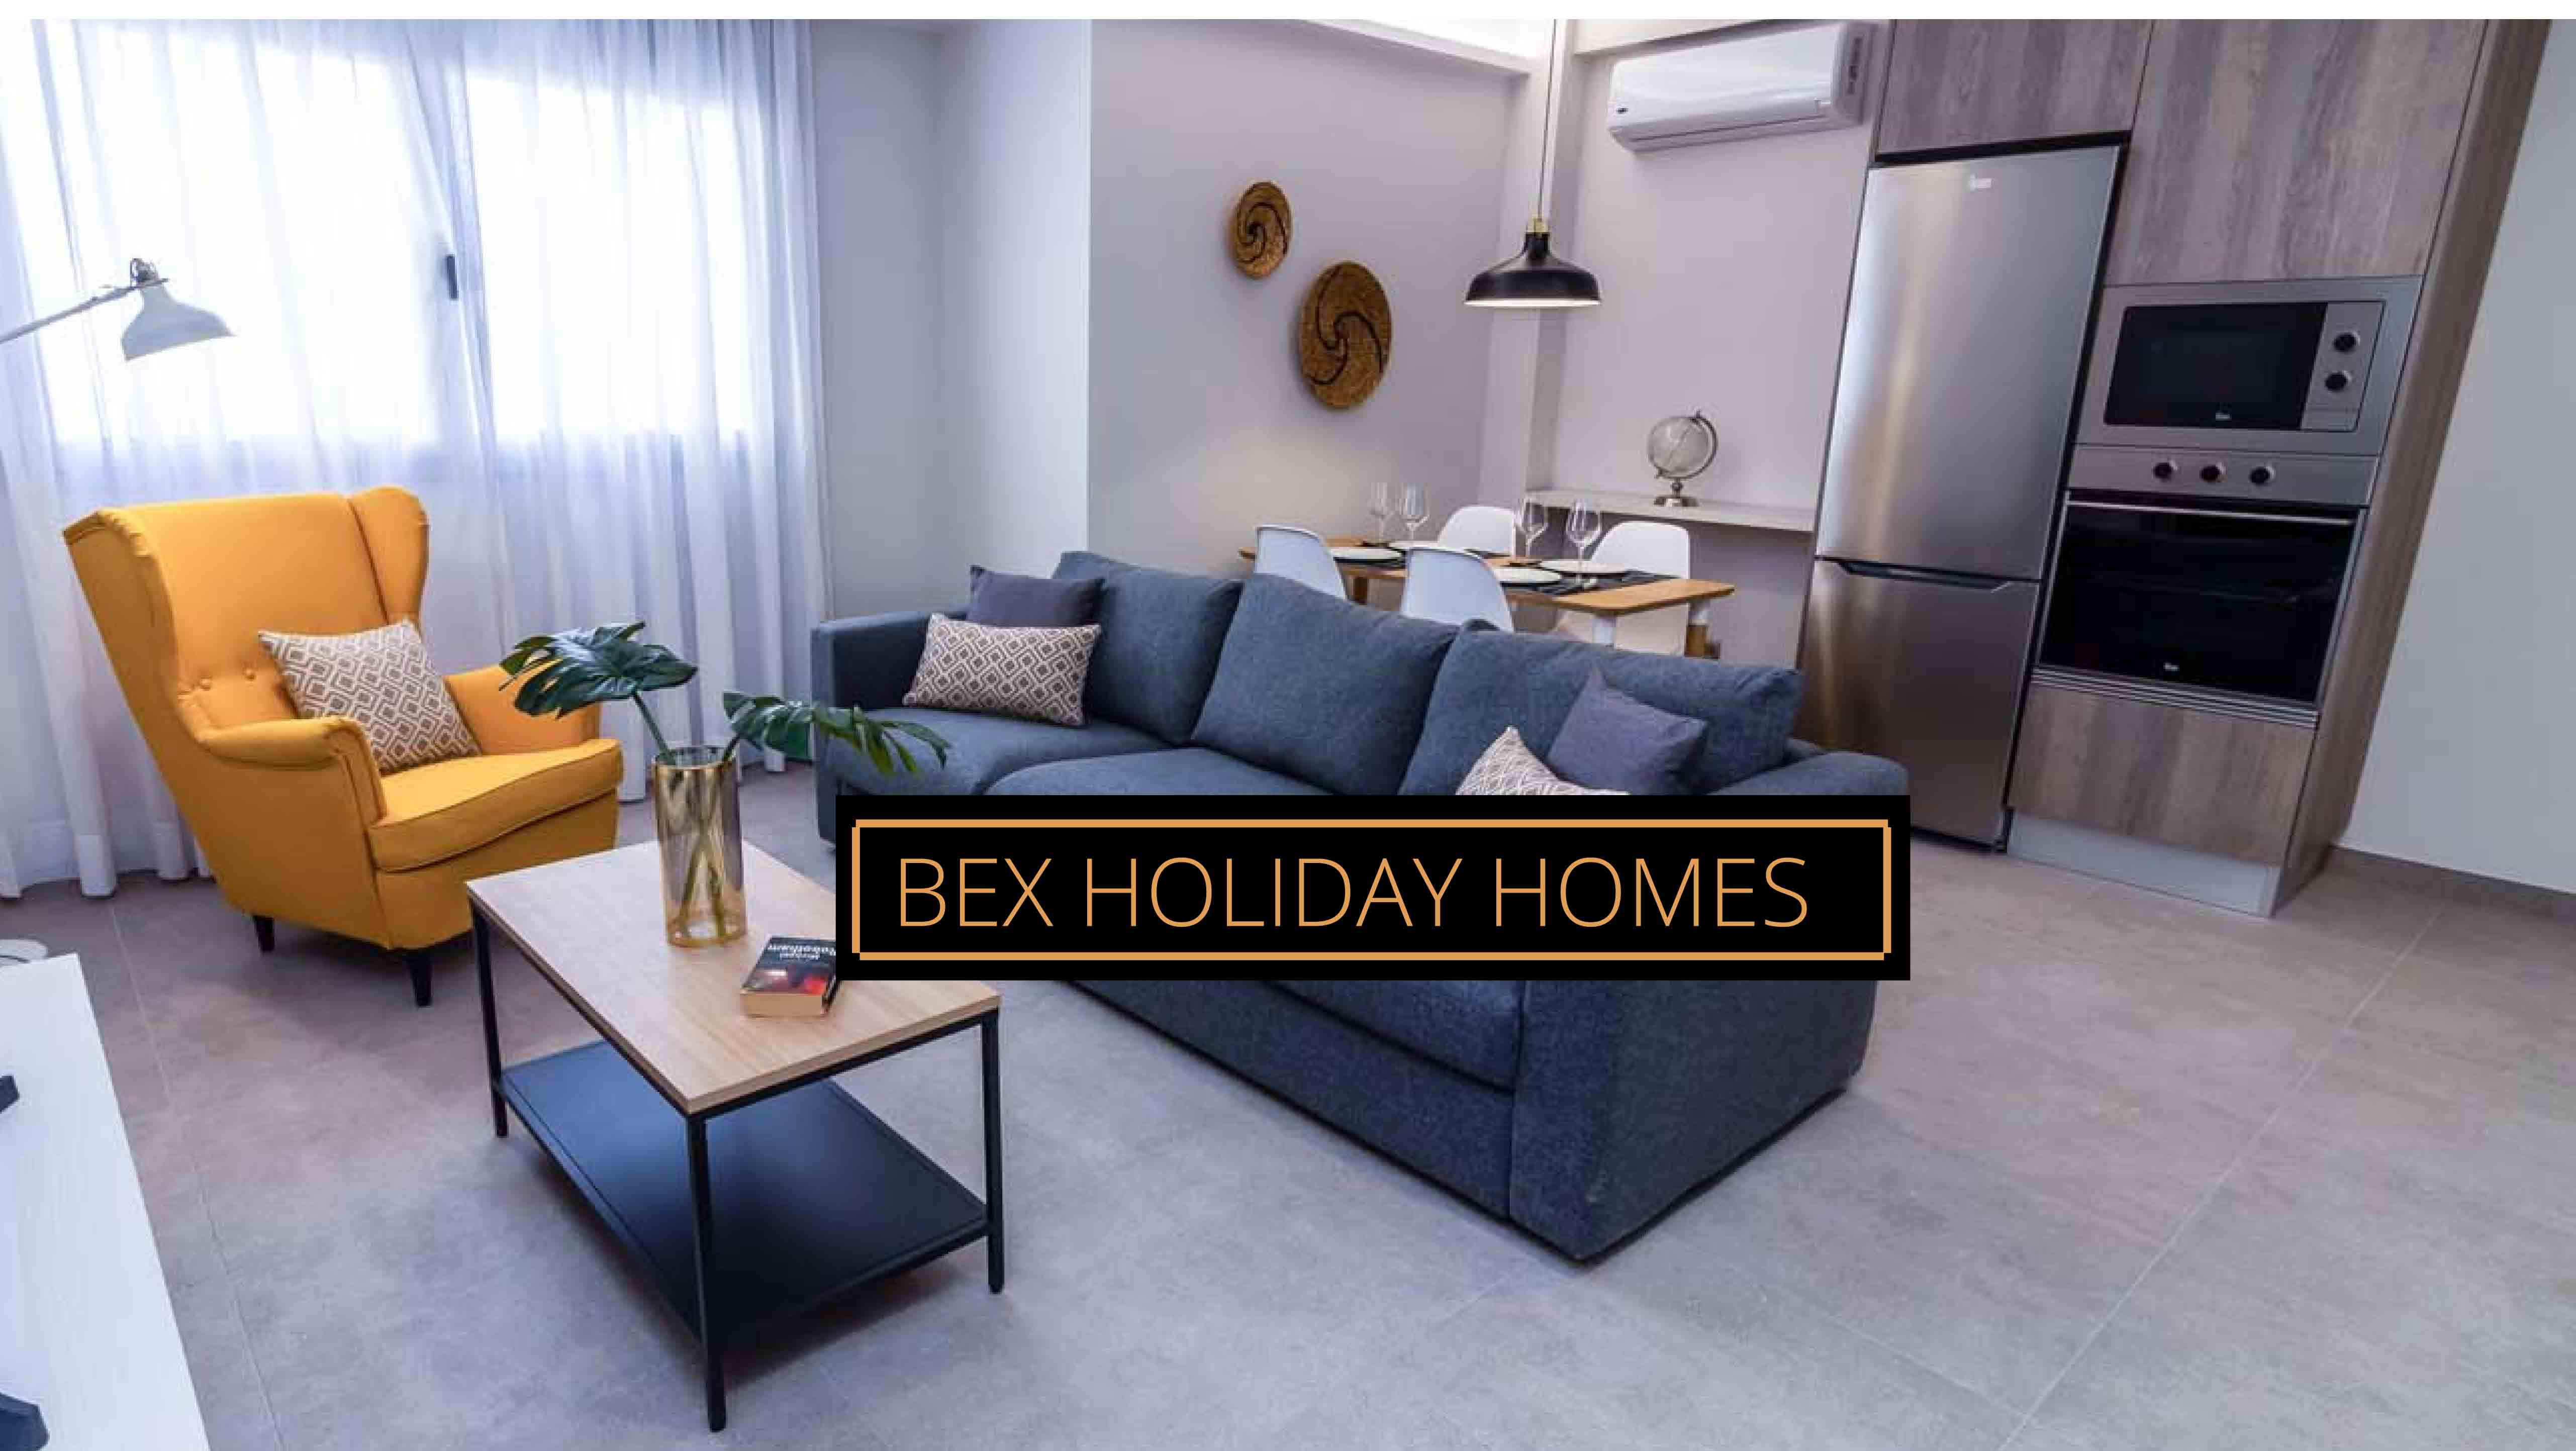 BEX HOLIDAY HOMES